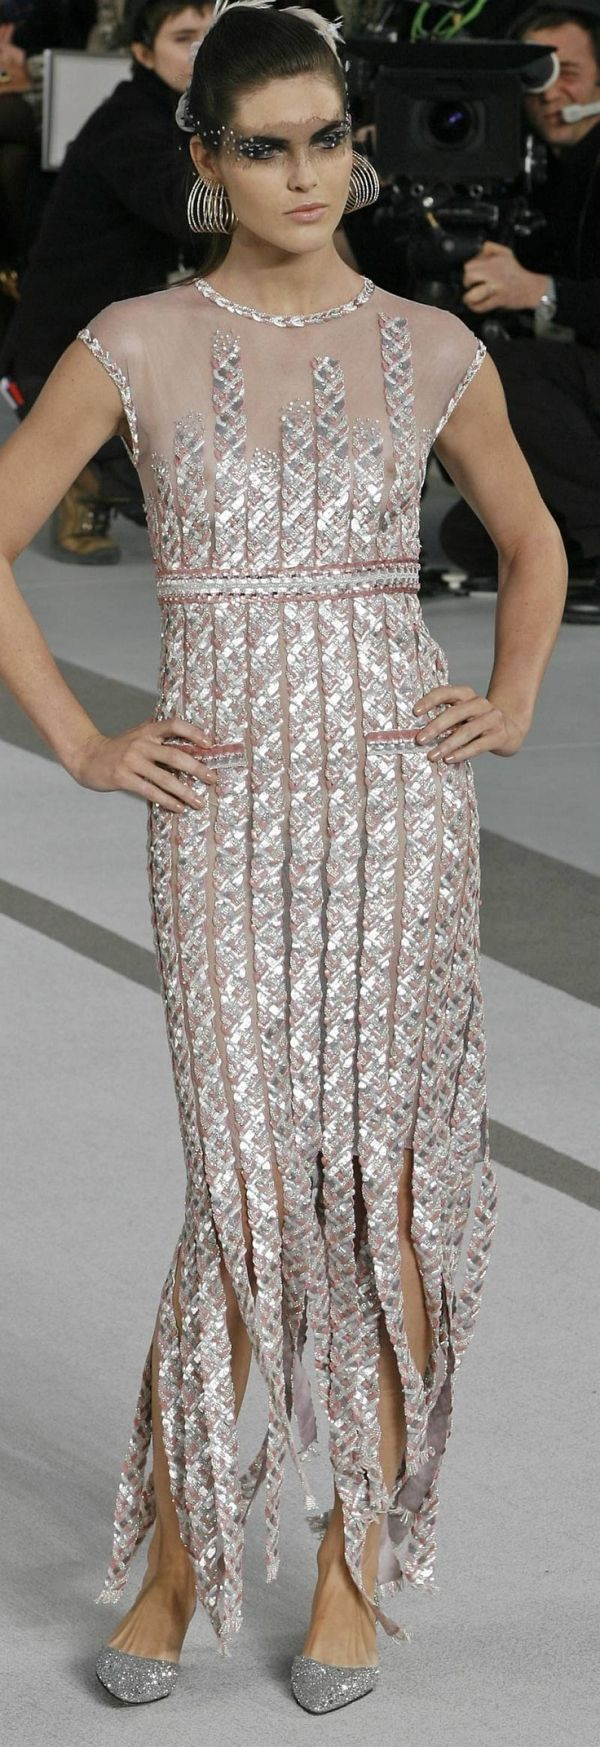 Chanel haute couture v all things chanel pinterest for Couture vs haute couture